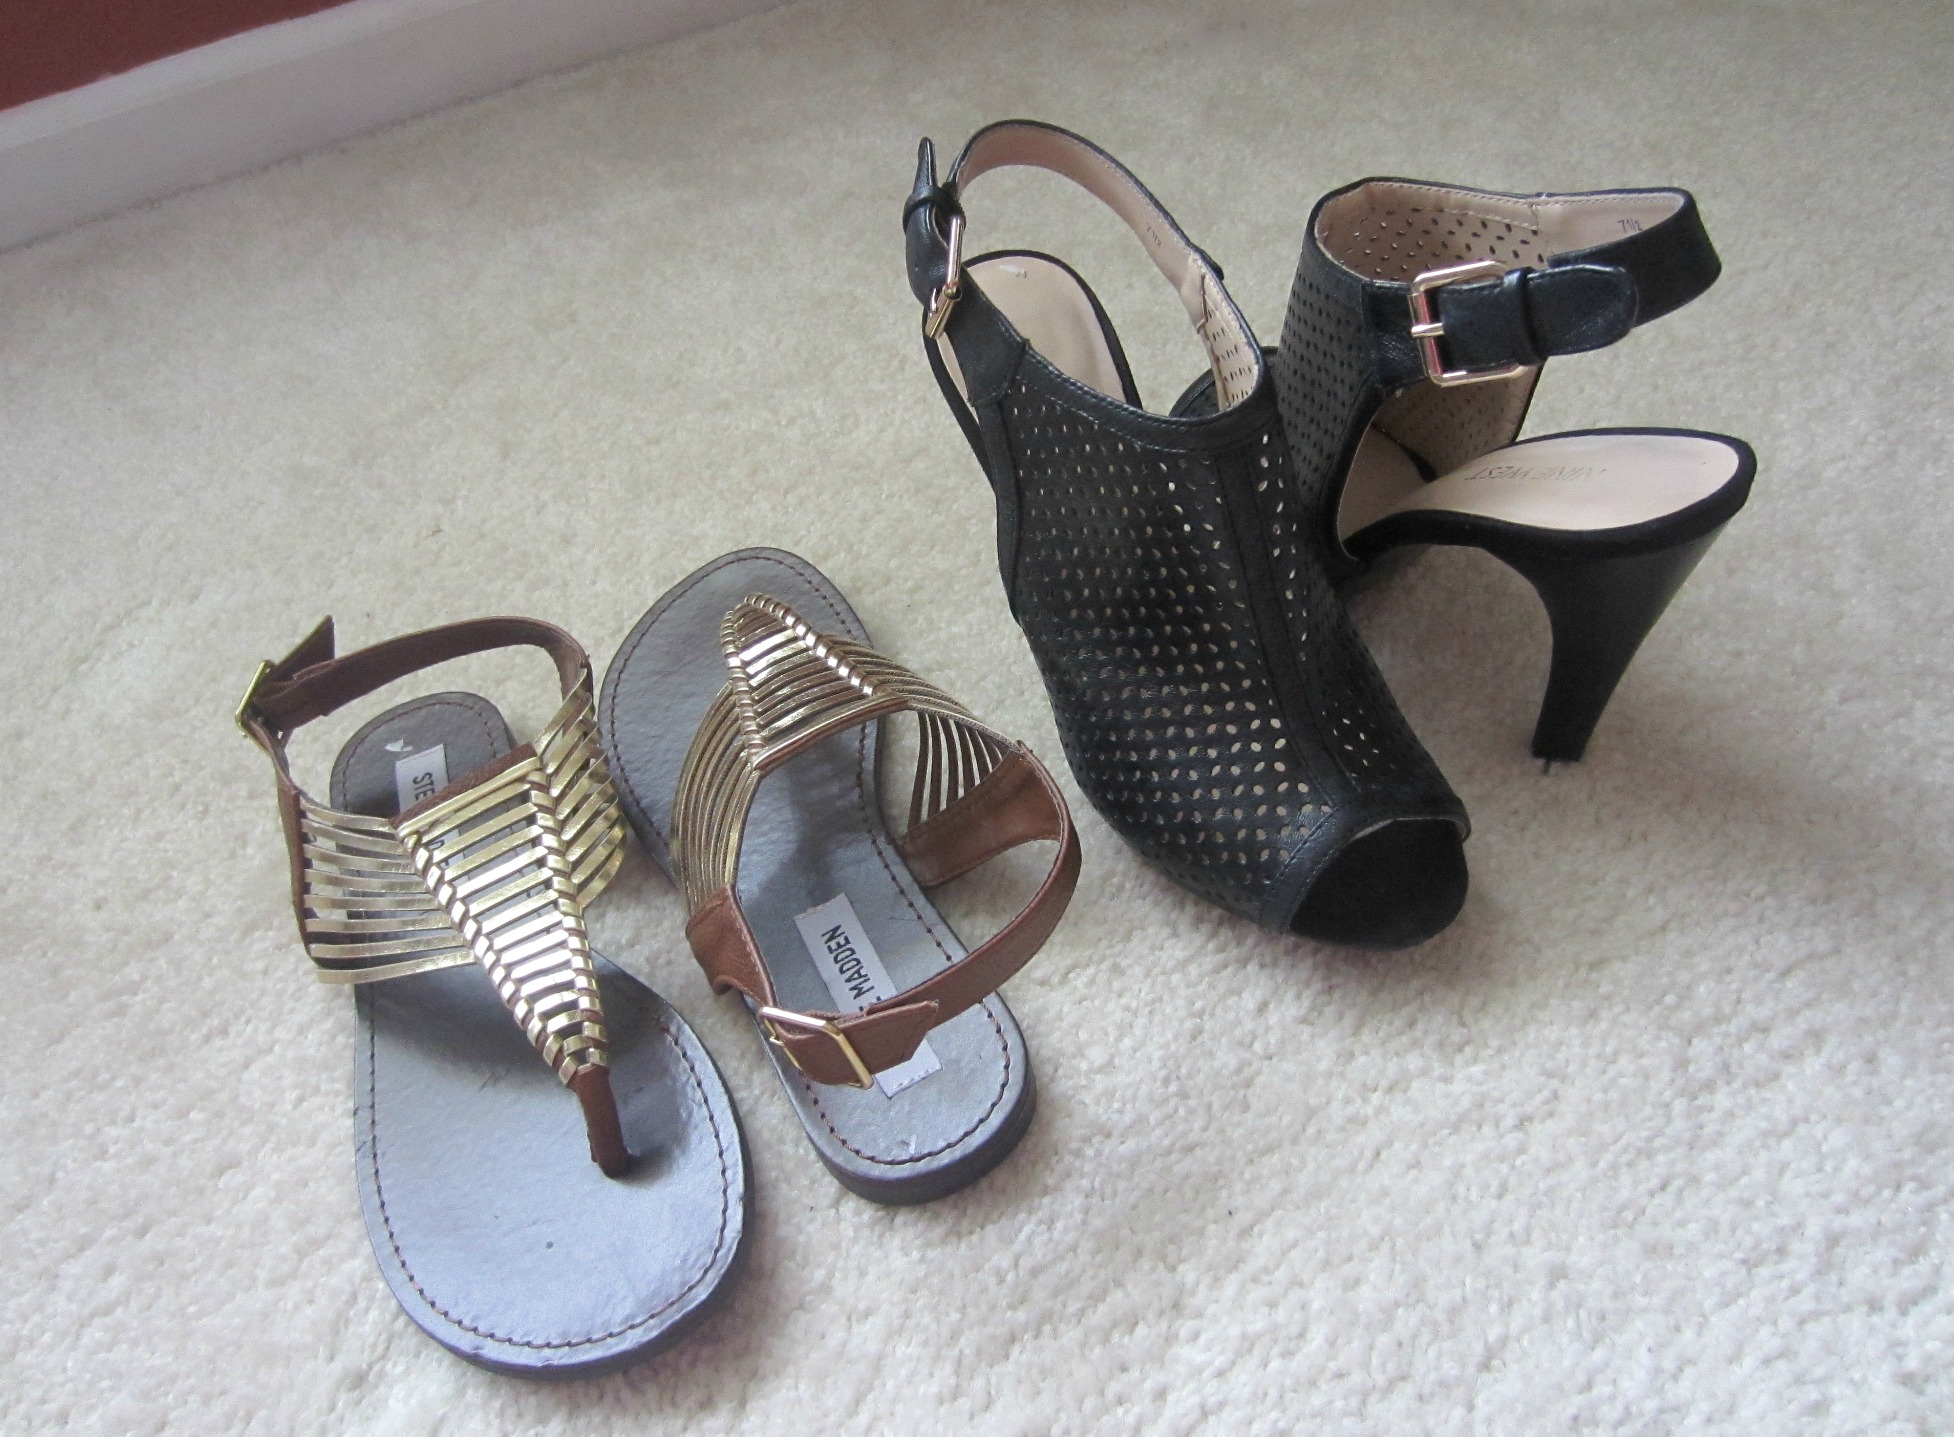 Steve Madden and Nine West shoes from TJMaxx